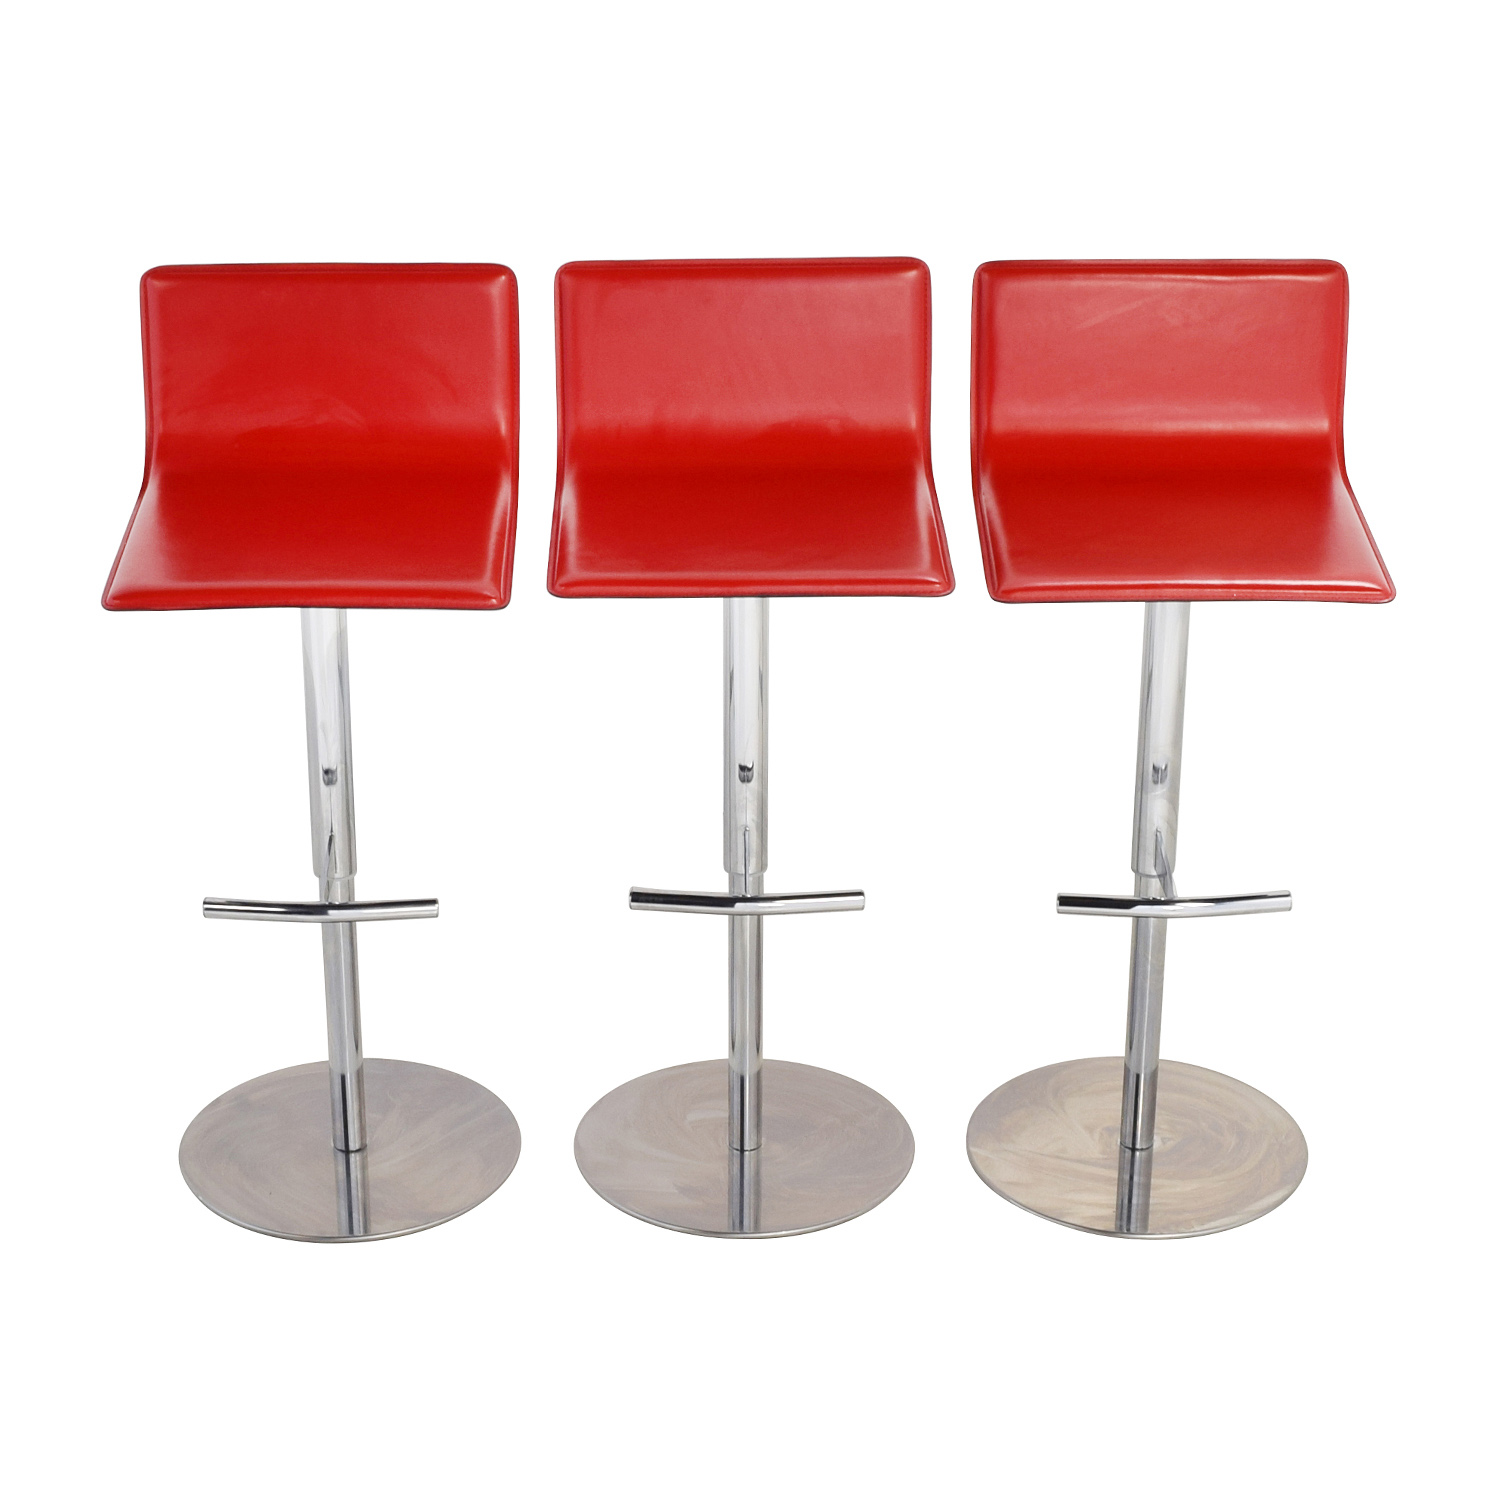 ... shop Trabaldo Italian Red Leather Adjustable Bar Stools Trabaldo ...  sc 1 st  Furnishare & 90% OFF - Trabaldo Trabaldo Italian Red Leather Adjustable Bar ... islam-shia.org